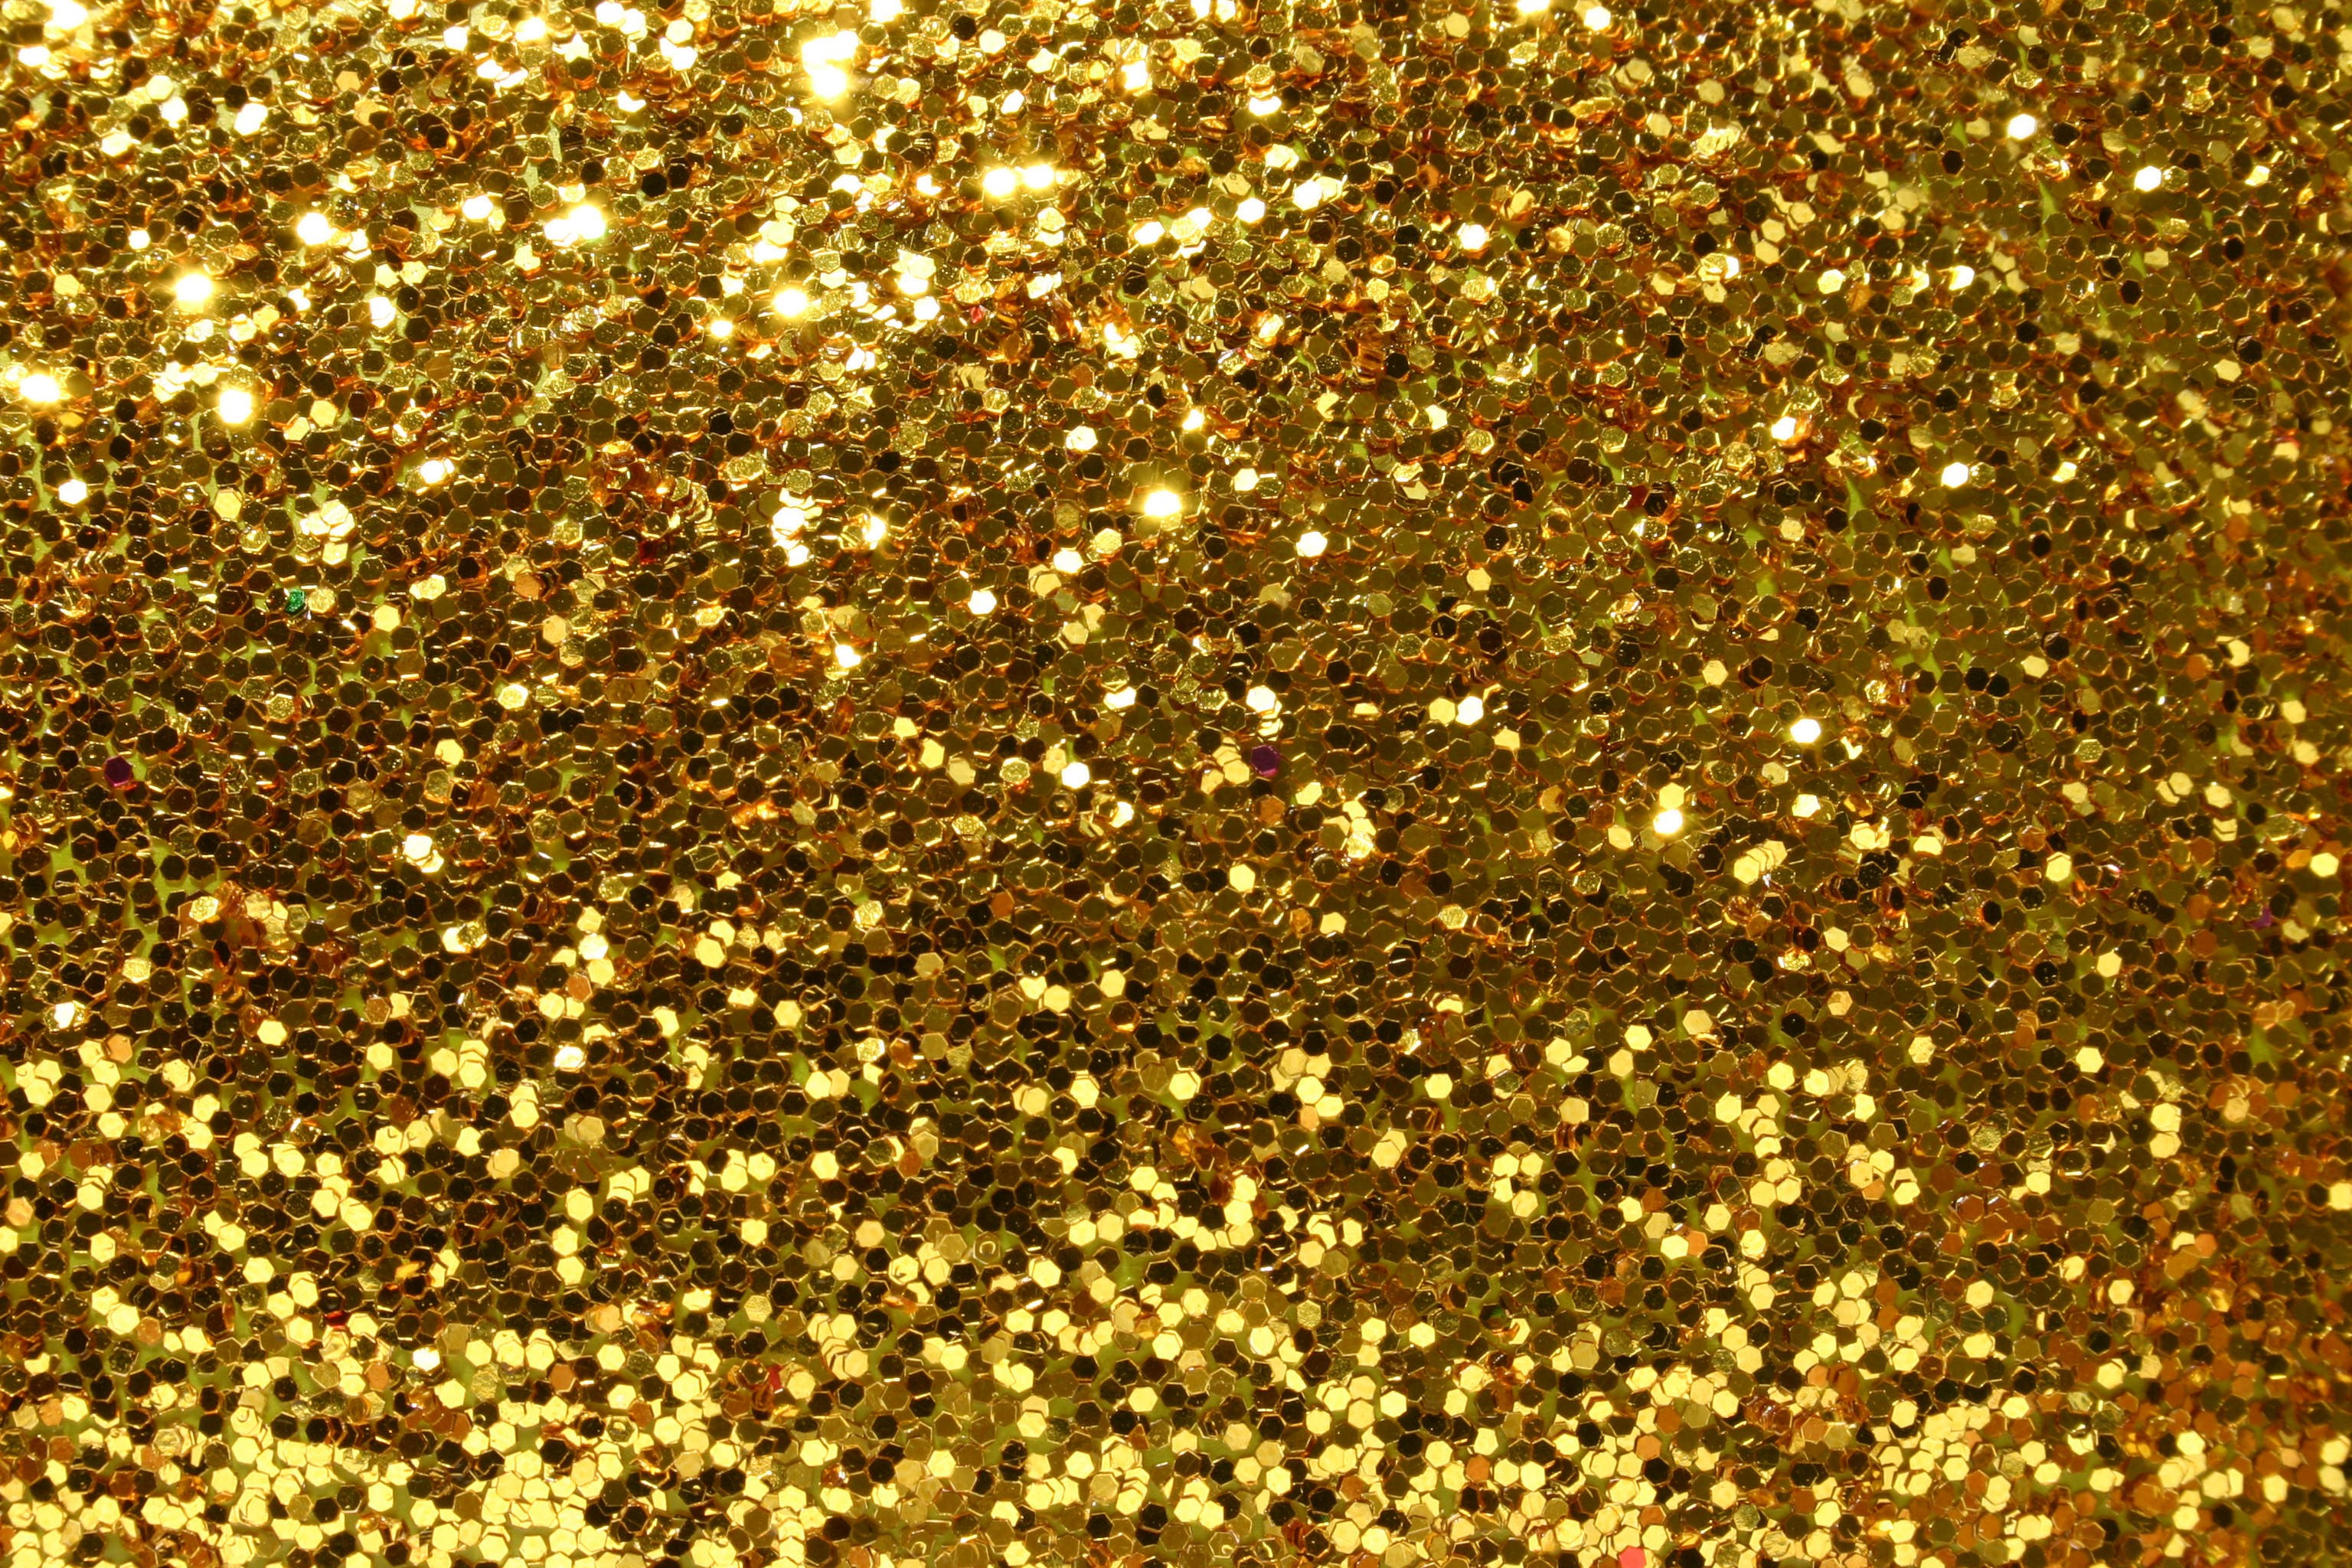 Gold glitter background download free beautiful - Gold desktop background ...